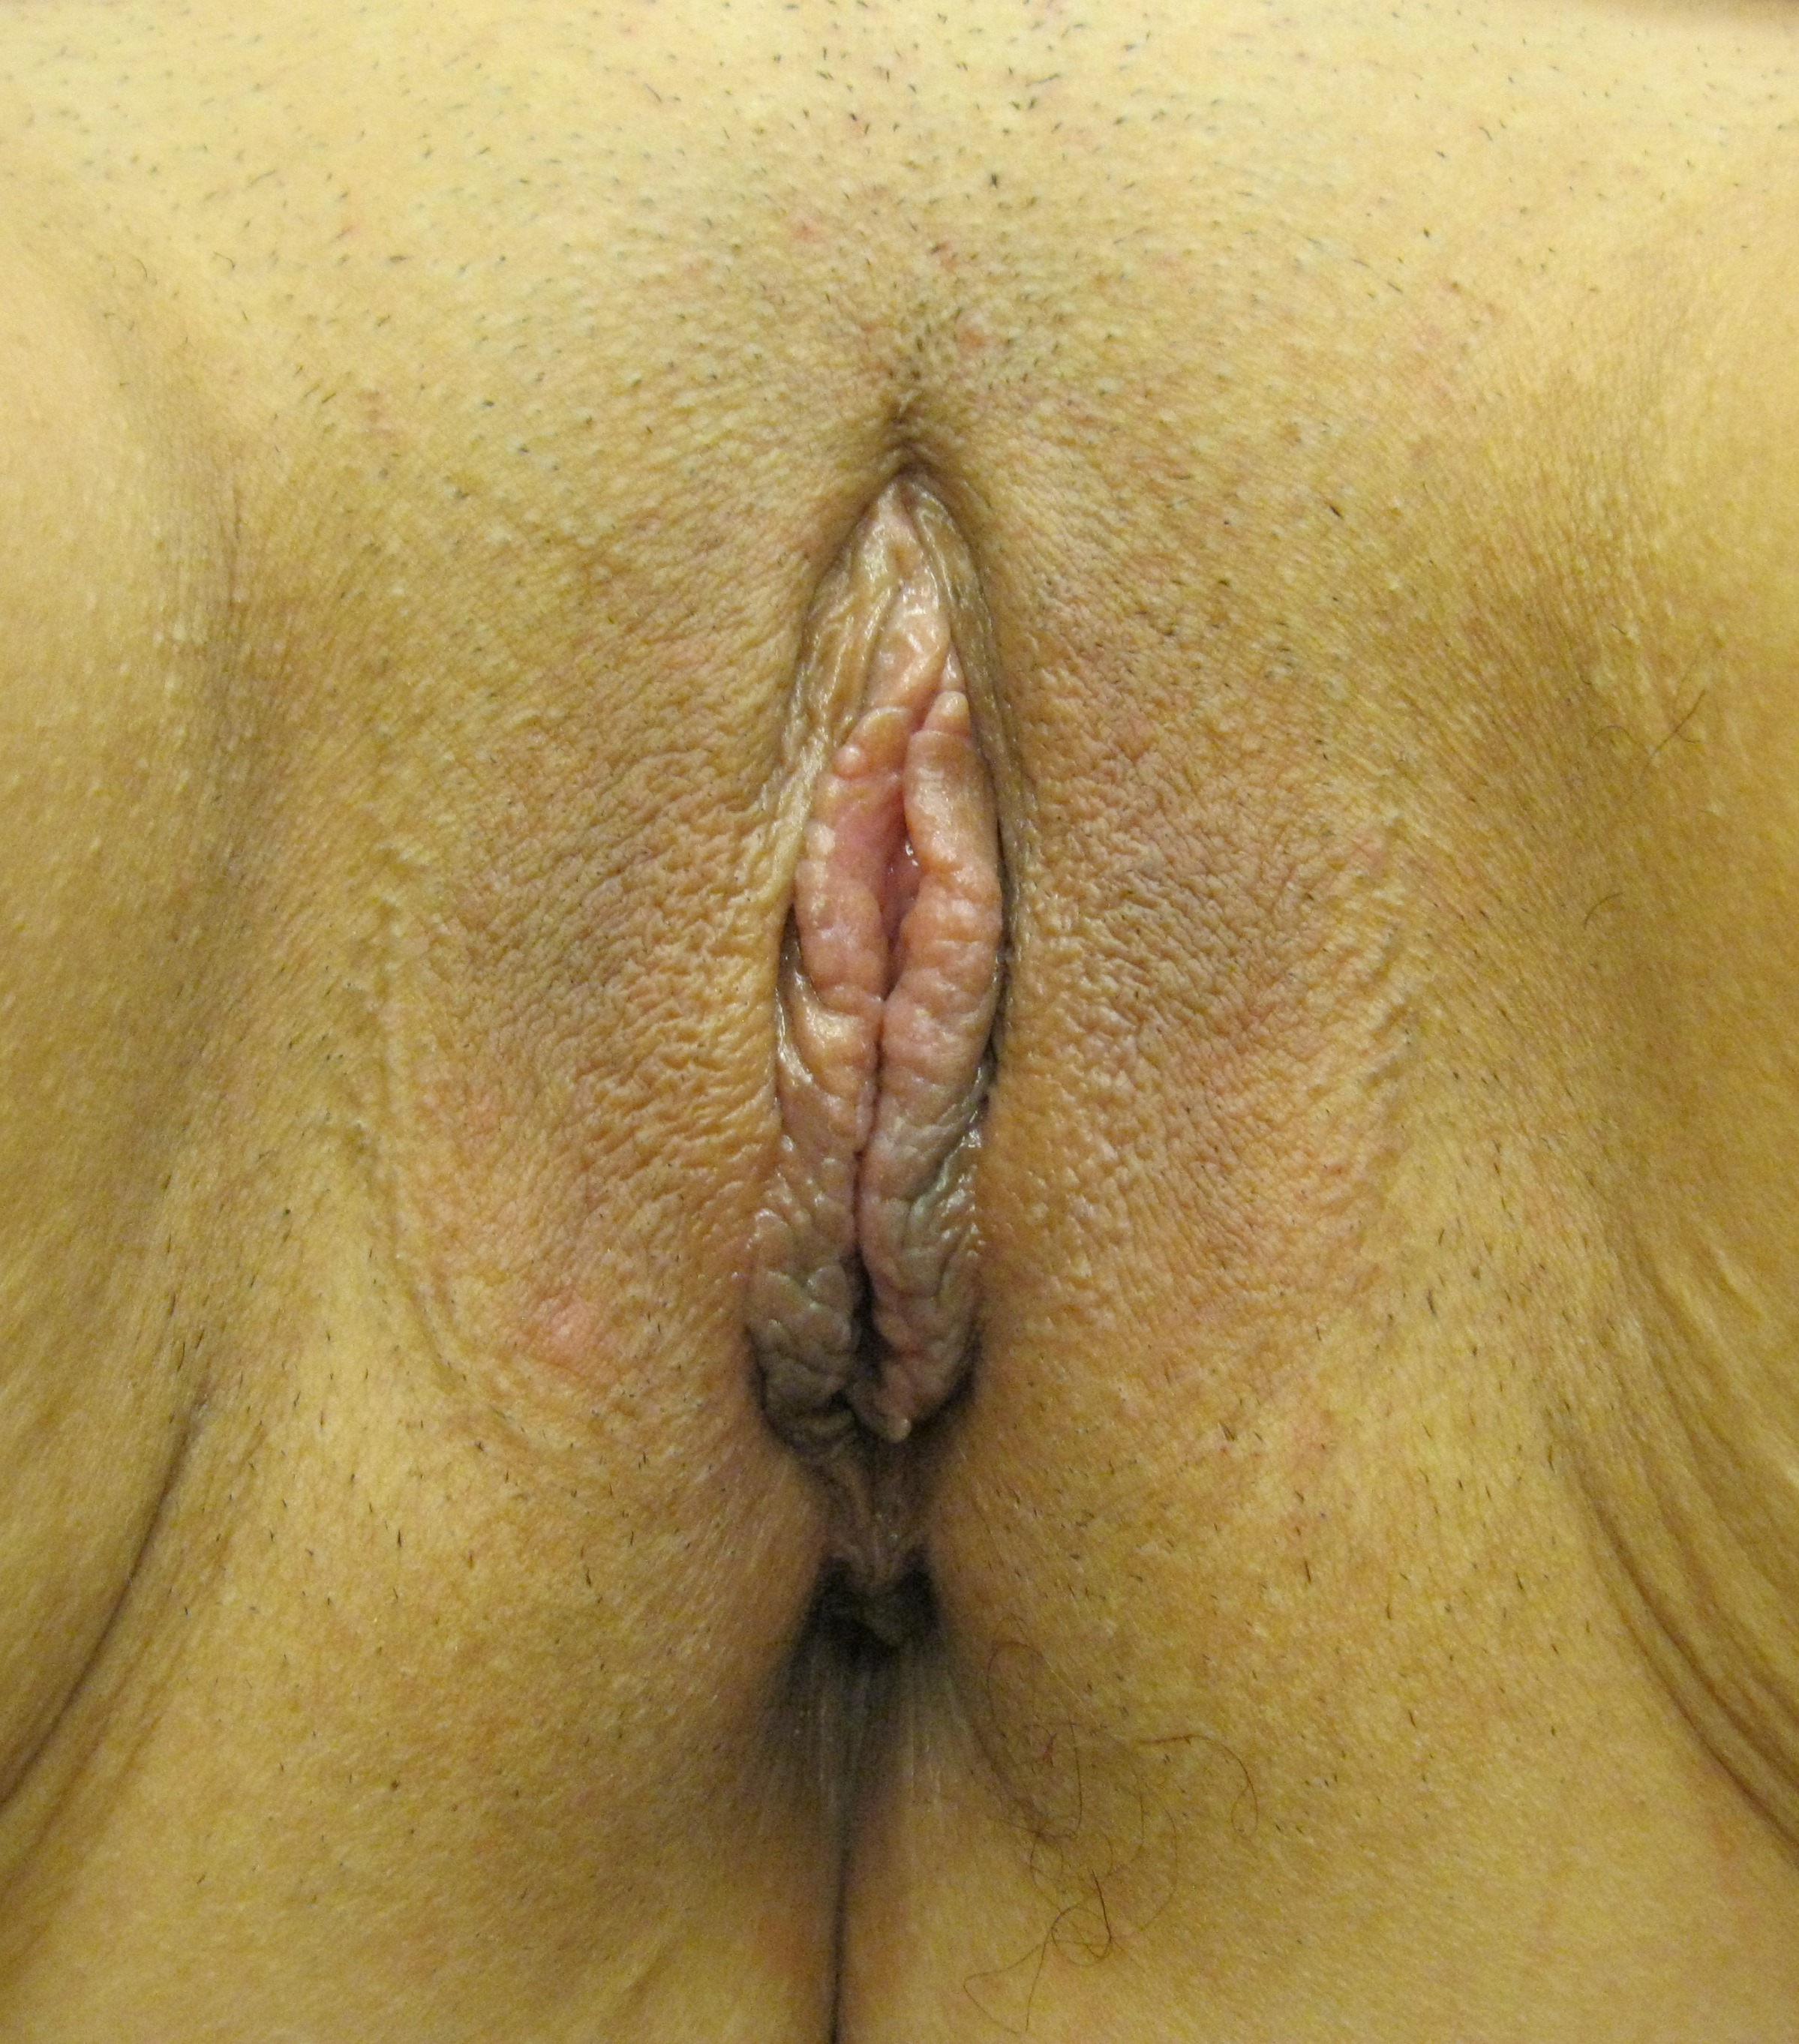 labiaplasty photos labia reduction for large labia Connecticut Jandali Plastic Surgery